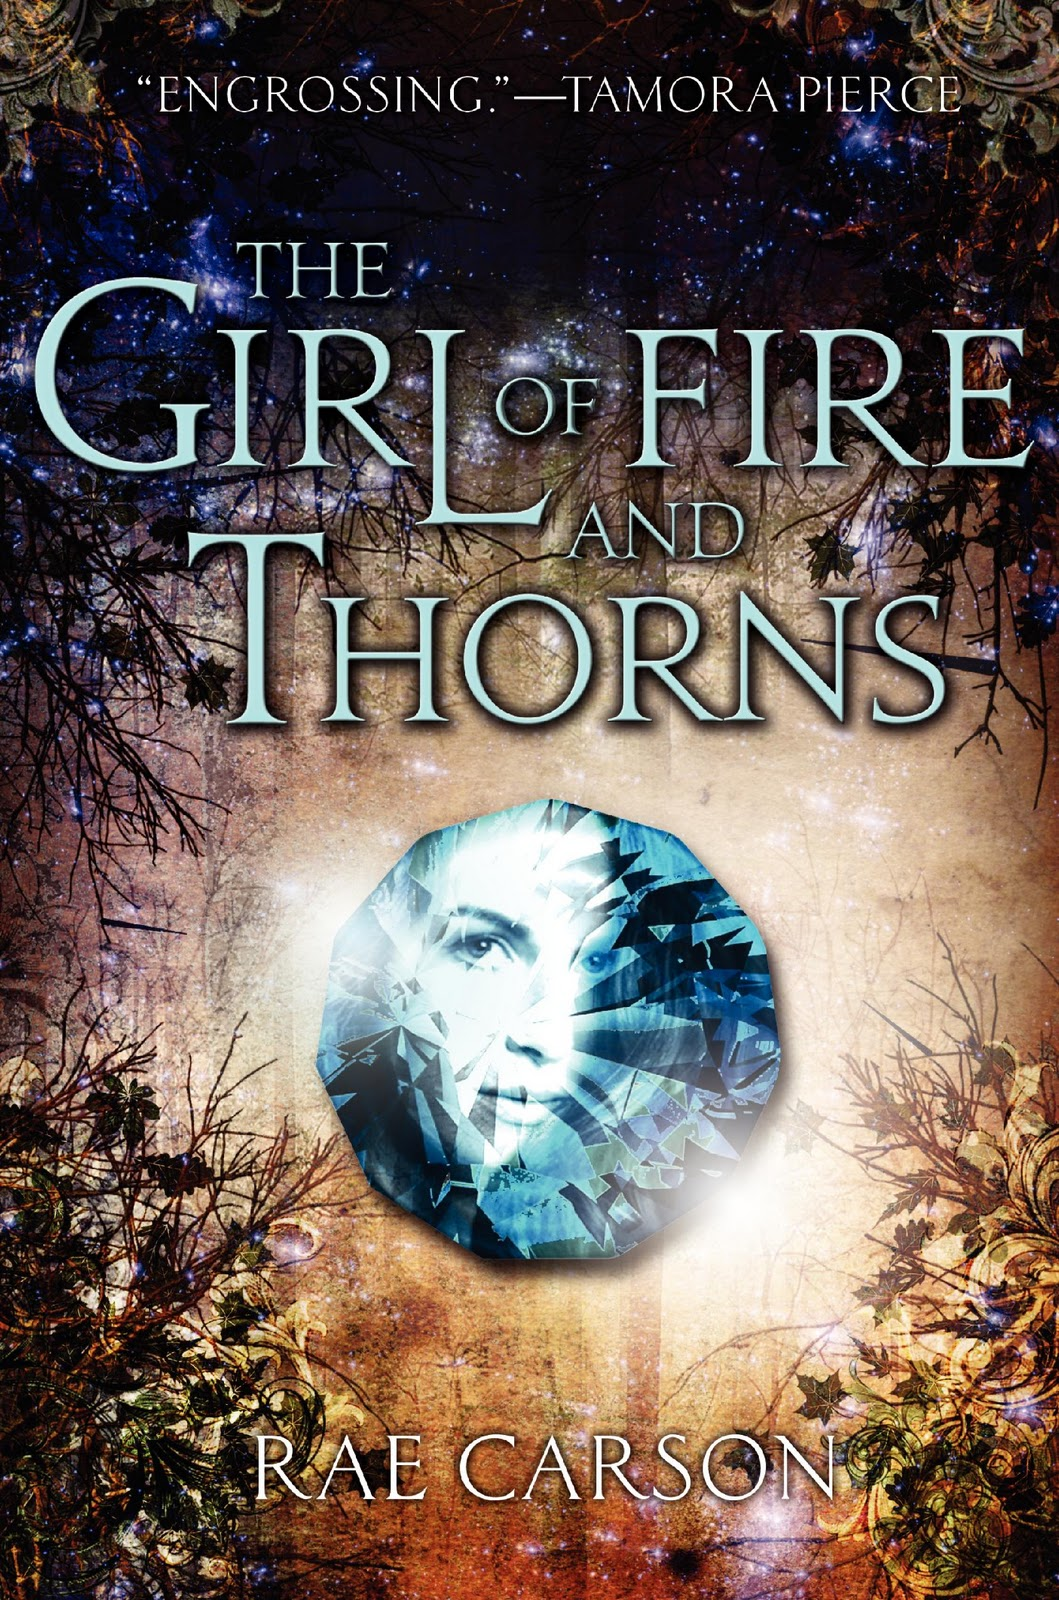 https://i1.wp.com/www.raecarson.com/wp-content/uploads/2014/01/Girl-of-Fire-and-Thorns-US.jpg